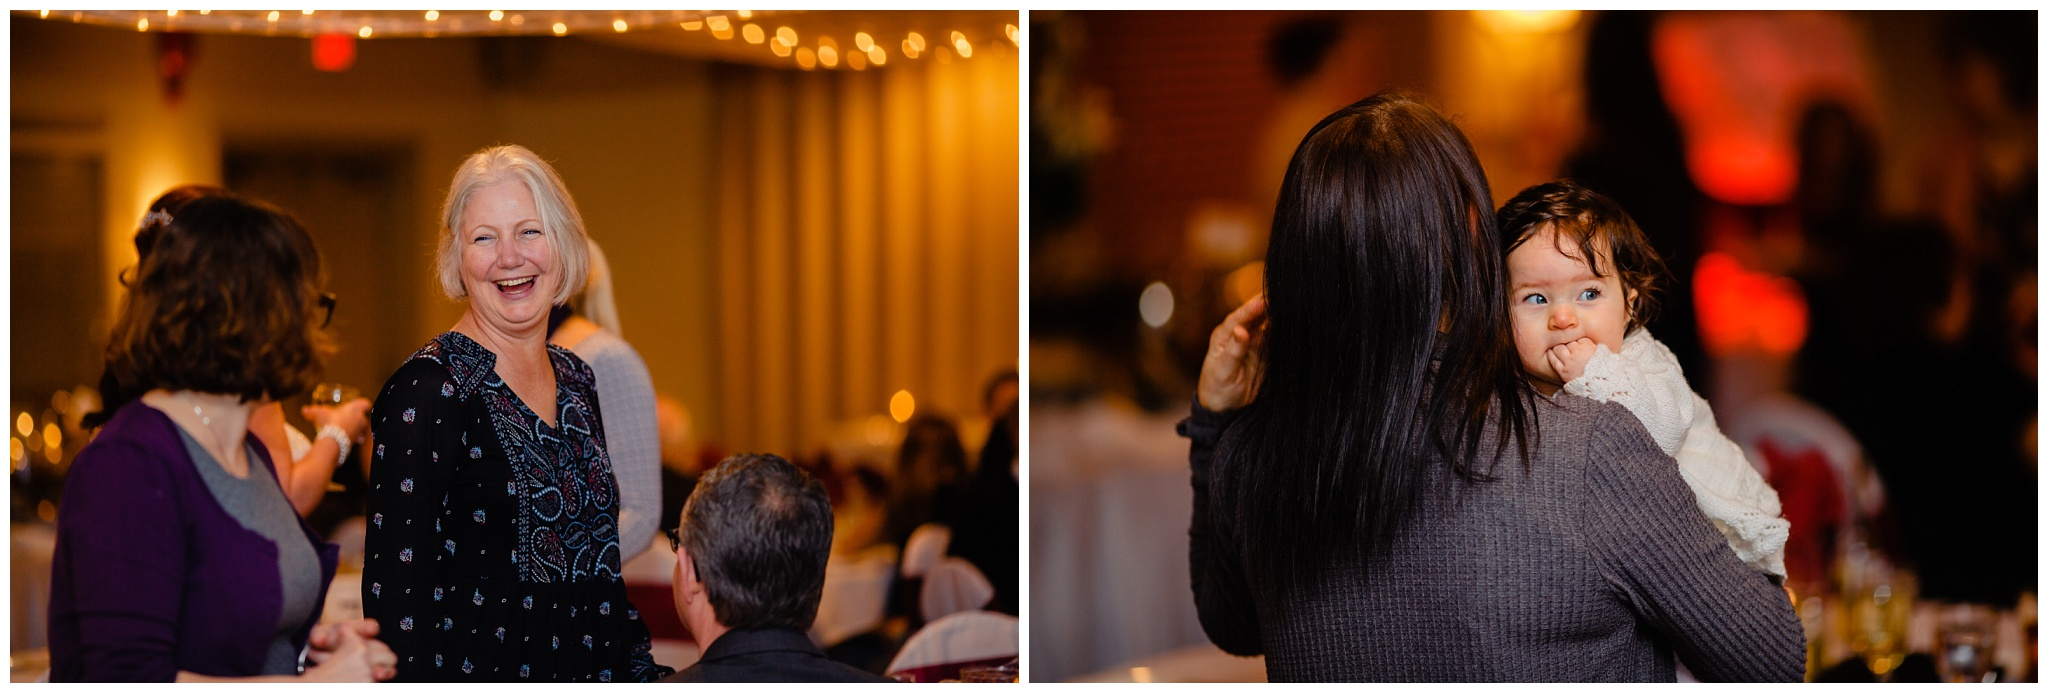 White Rock Intimate Wedding 5 Star Catering Venue Surrey BC Middle Aged Couple_0019.jpg